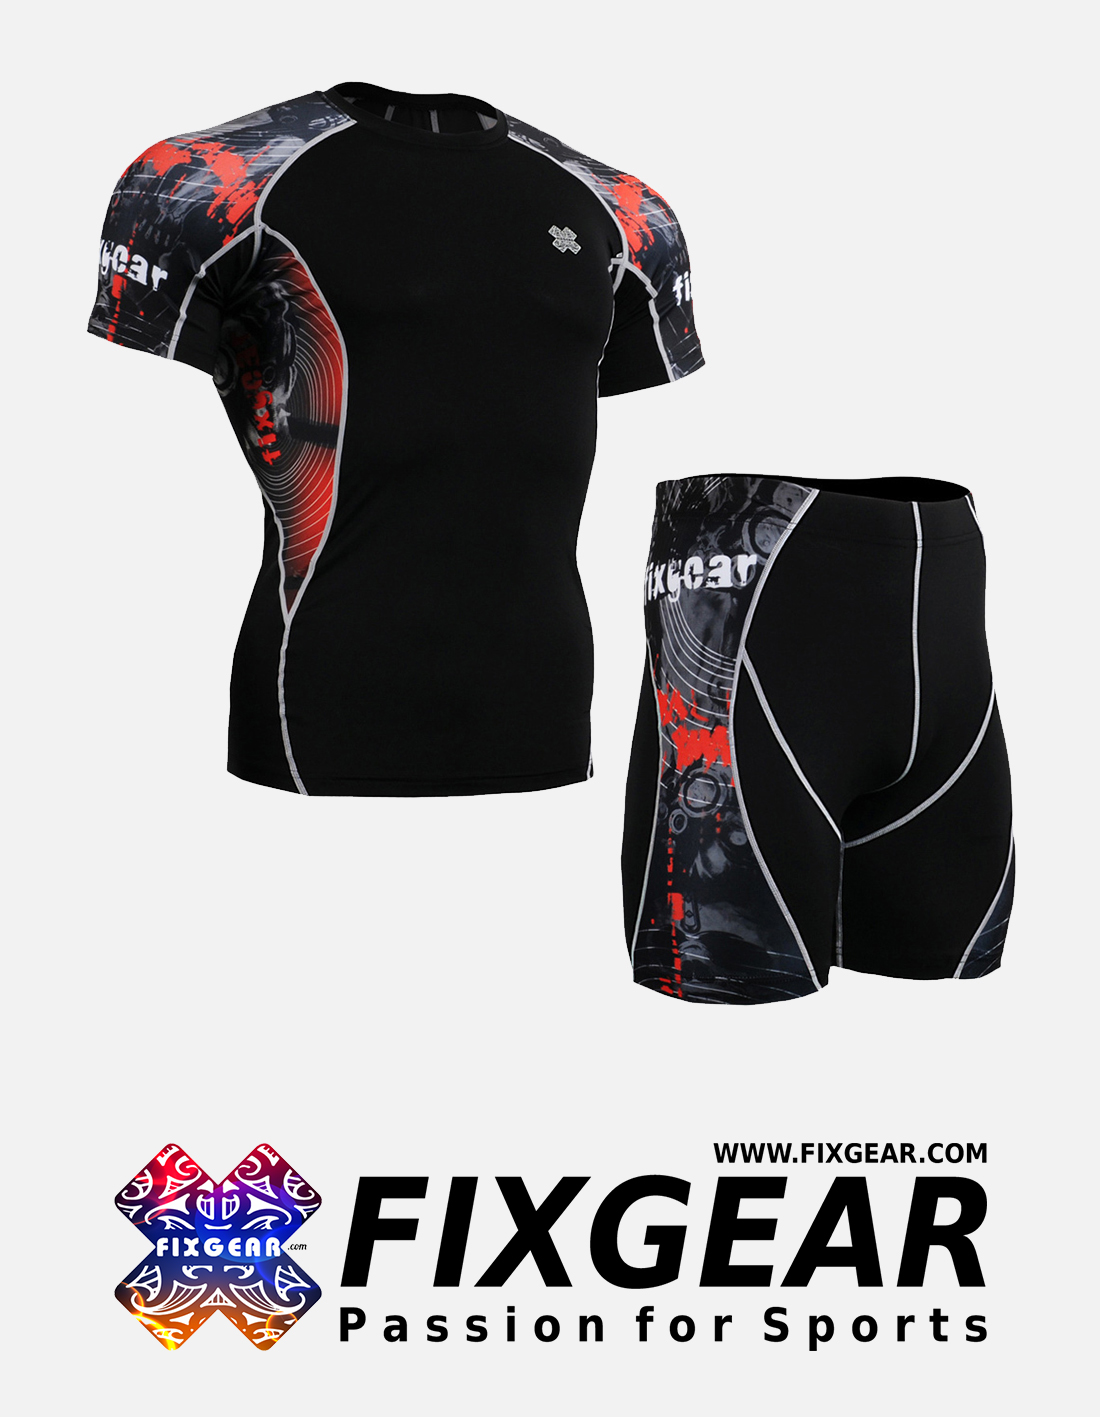 FIXGEAR C2S-P2S-B30 Set Compression Base Layer Shirt & Compression Drawer Shorts